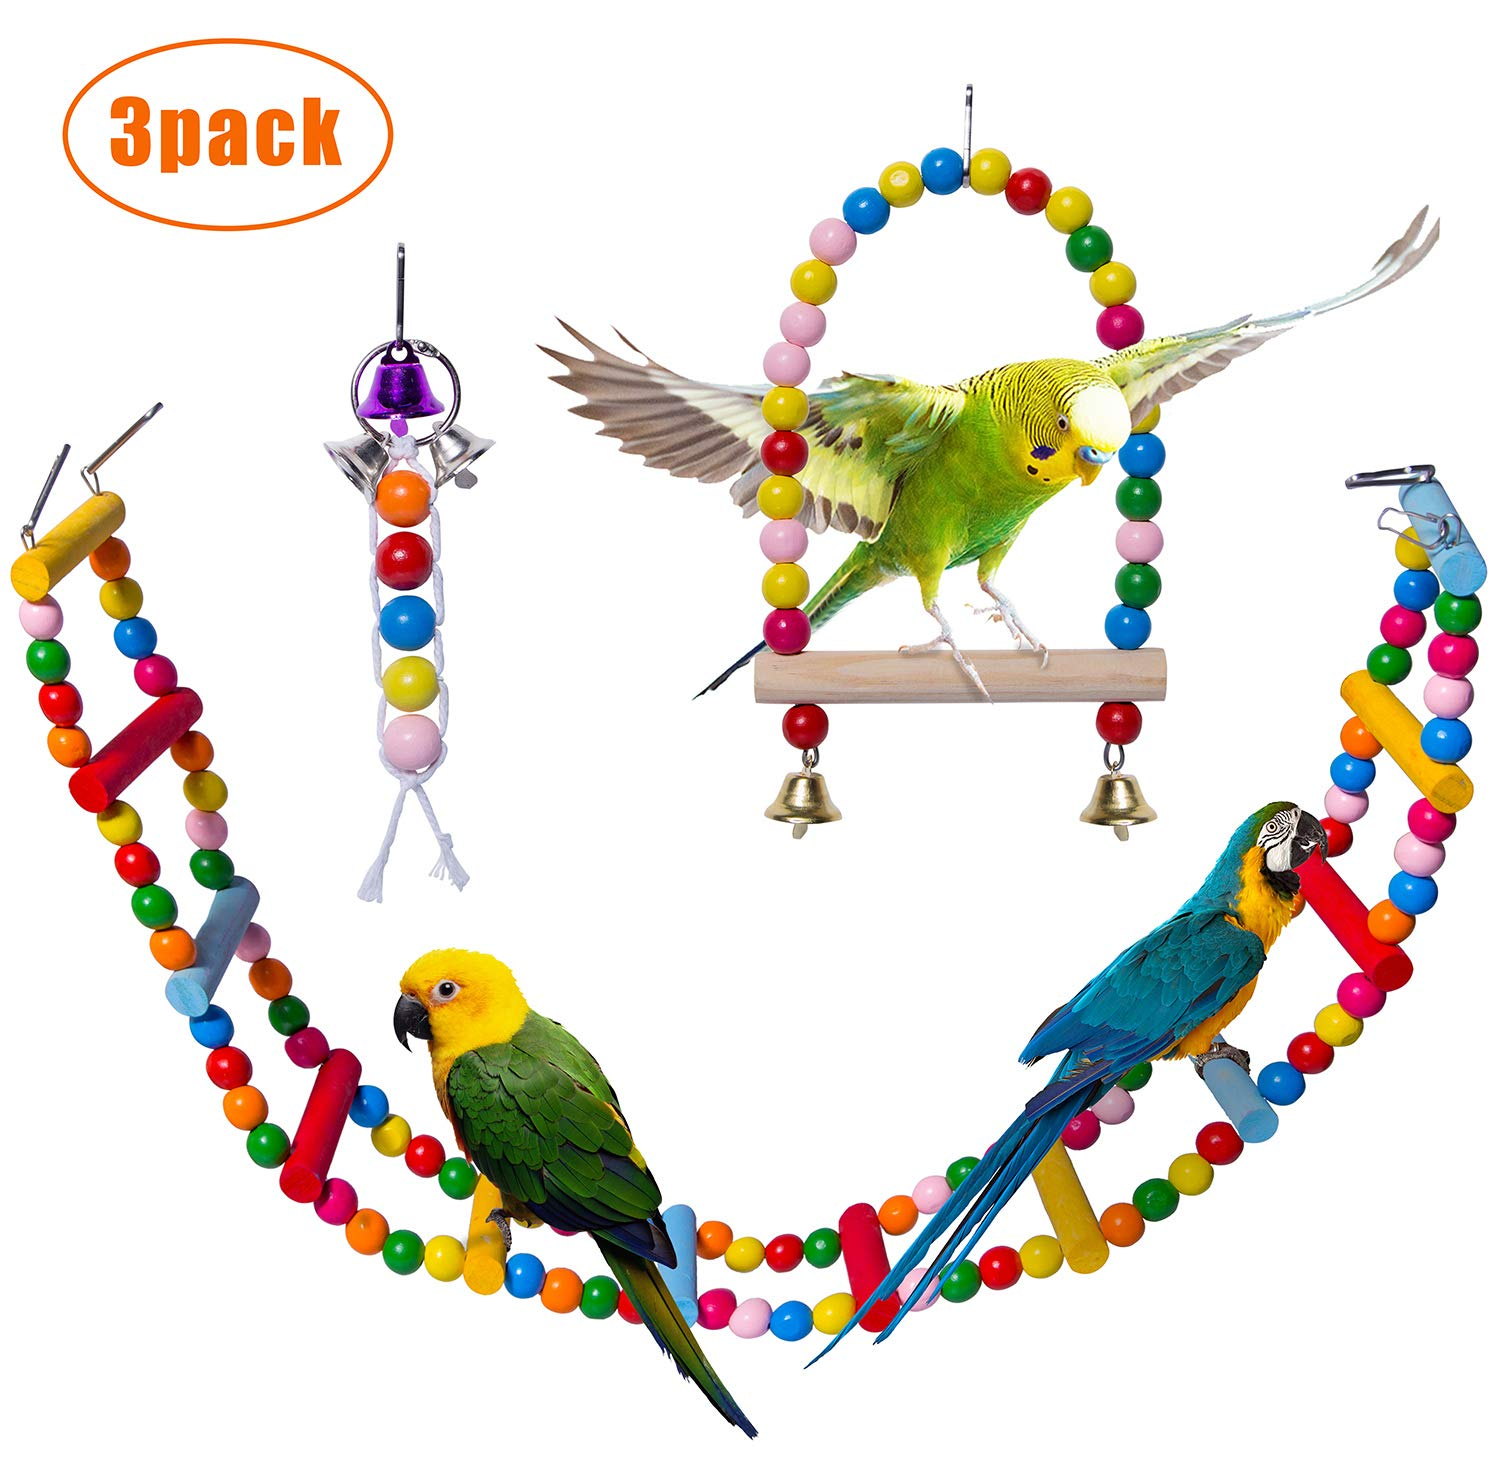 Petsvv Bird Parrot Toys, Natural Wooden Bird Toys Cage Ladder for Trainning with A Bird Swing and A Bird Bell, Pet Bird Ladder Toys for Cockatiel Conure Parakeet by Petsvv